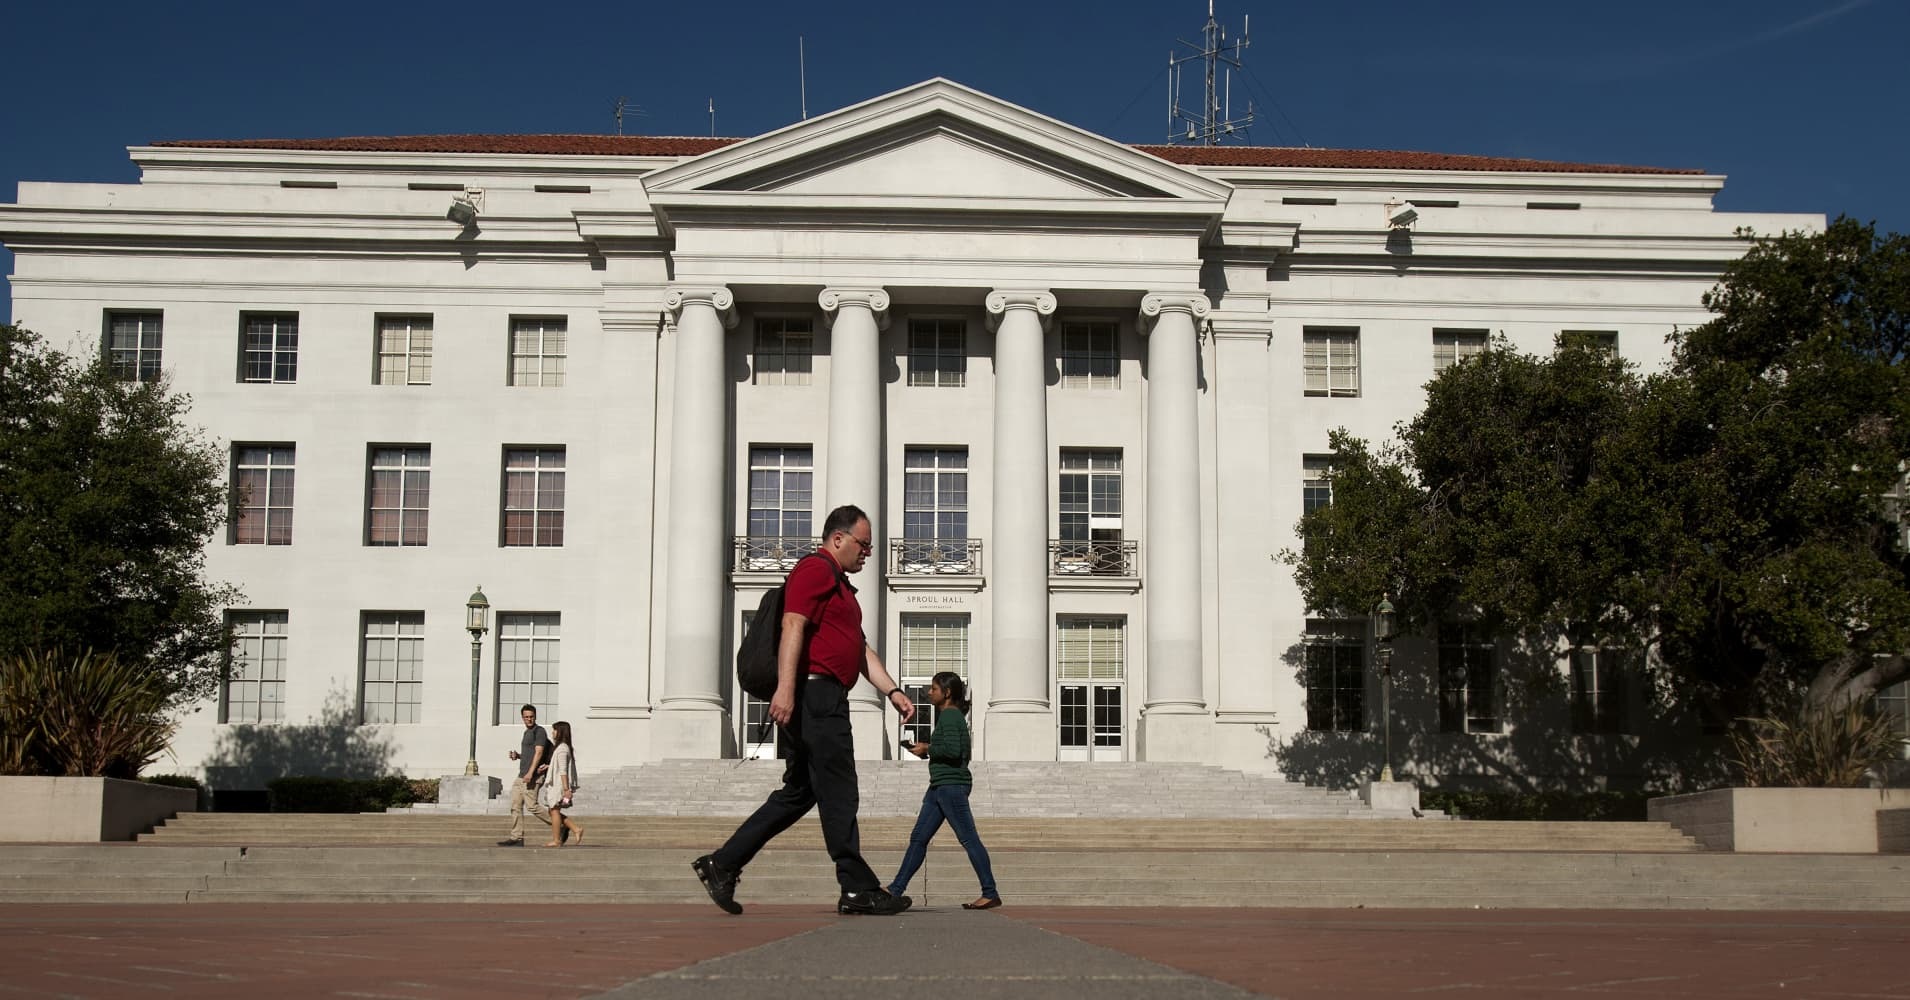 Pedestrians pass Sproul Hall, the University of California at Berkeley's administration building.